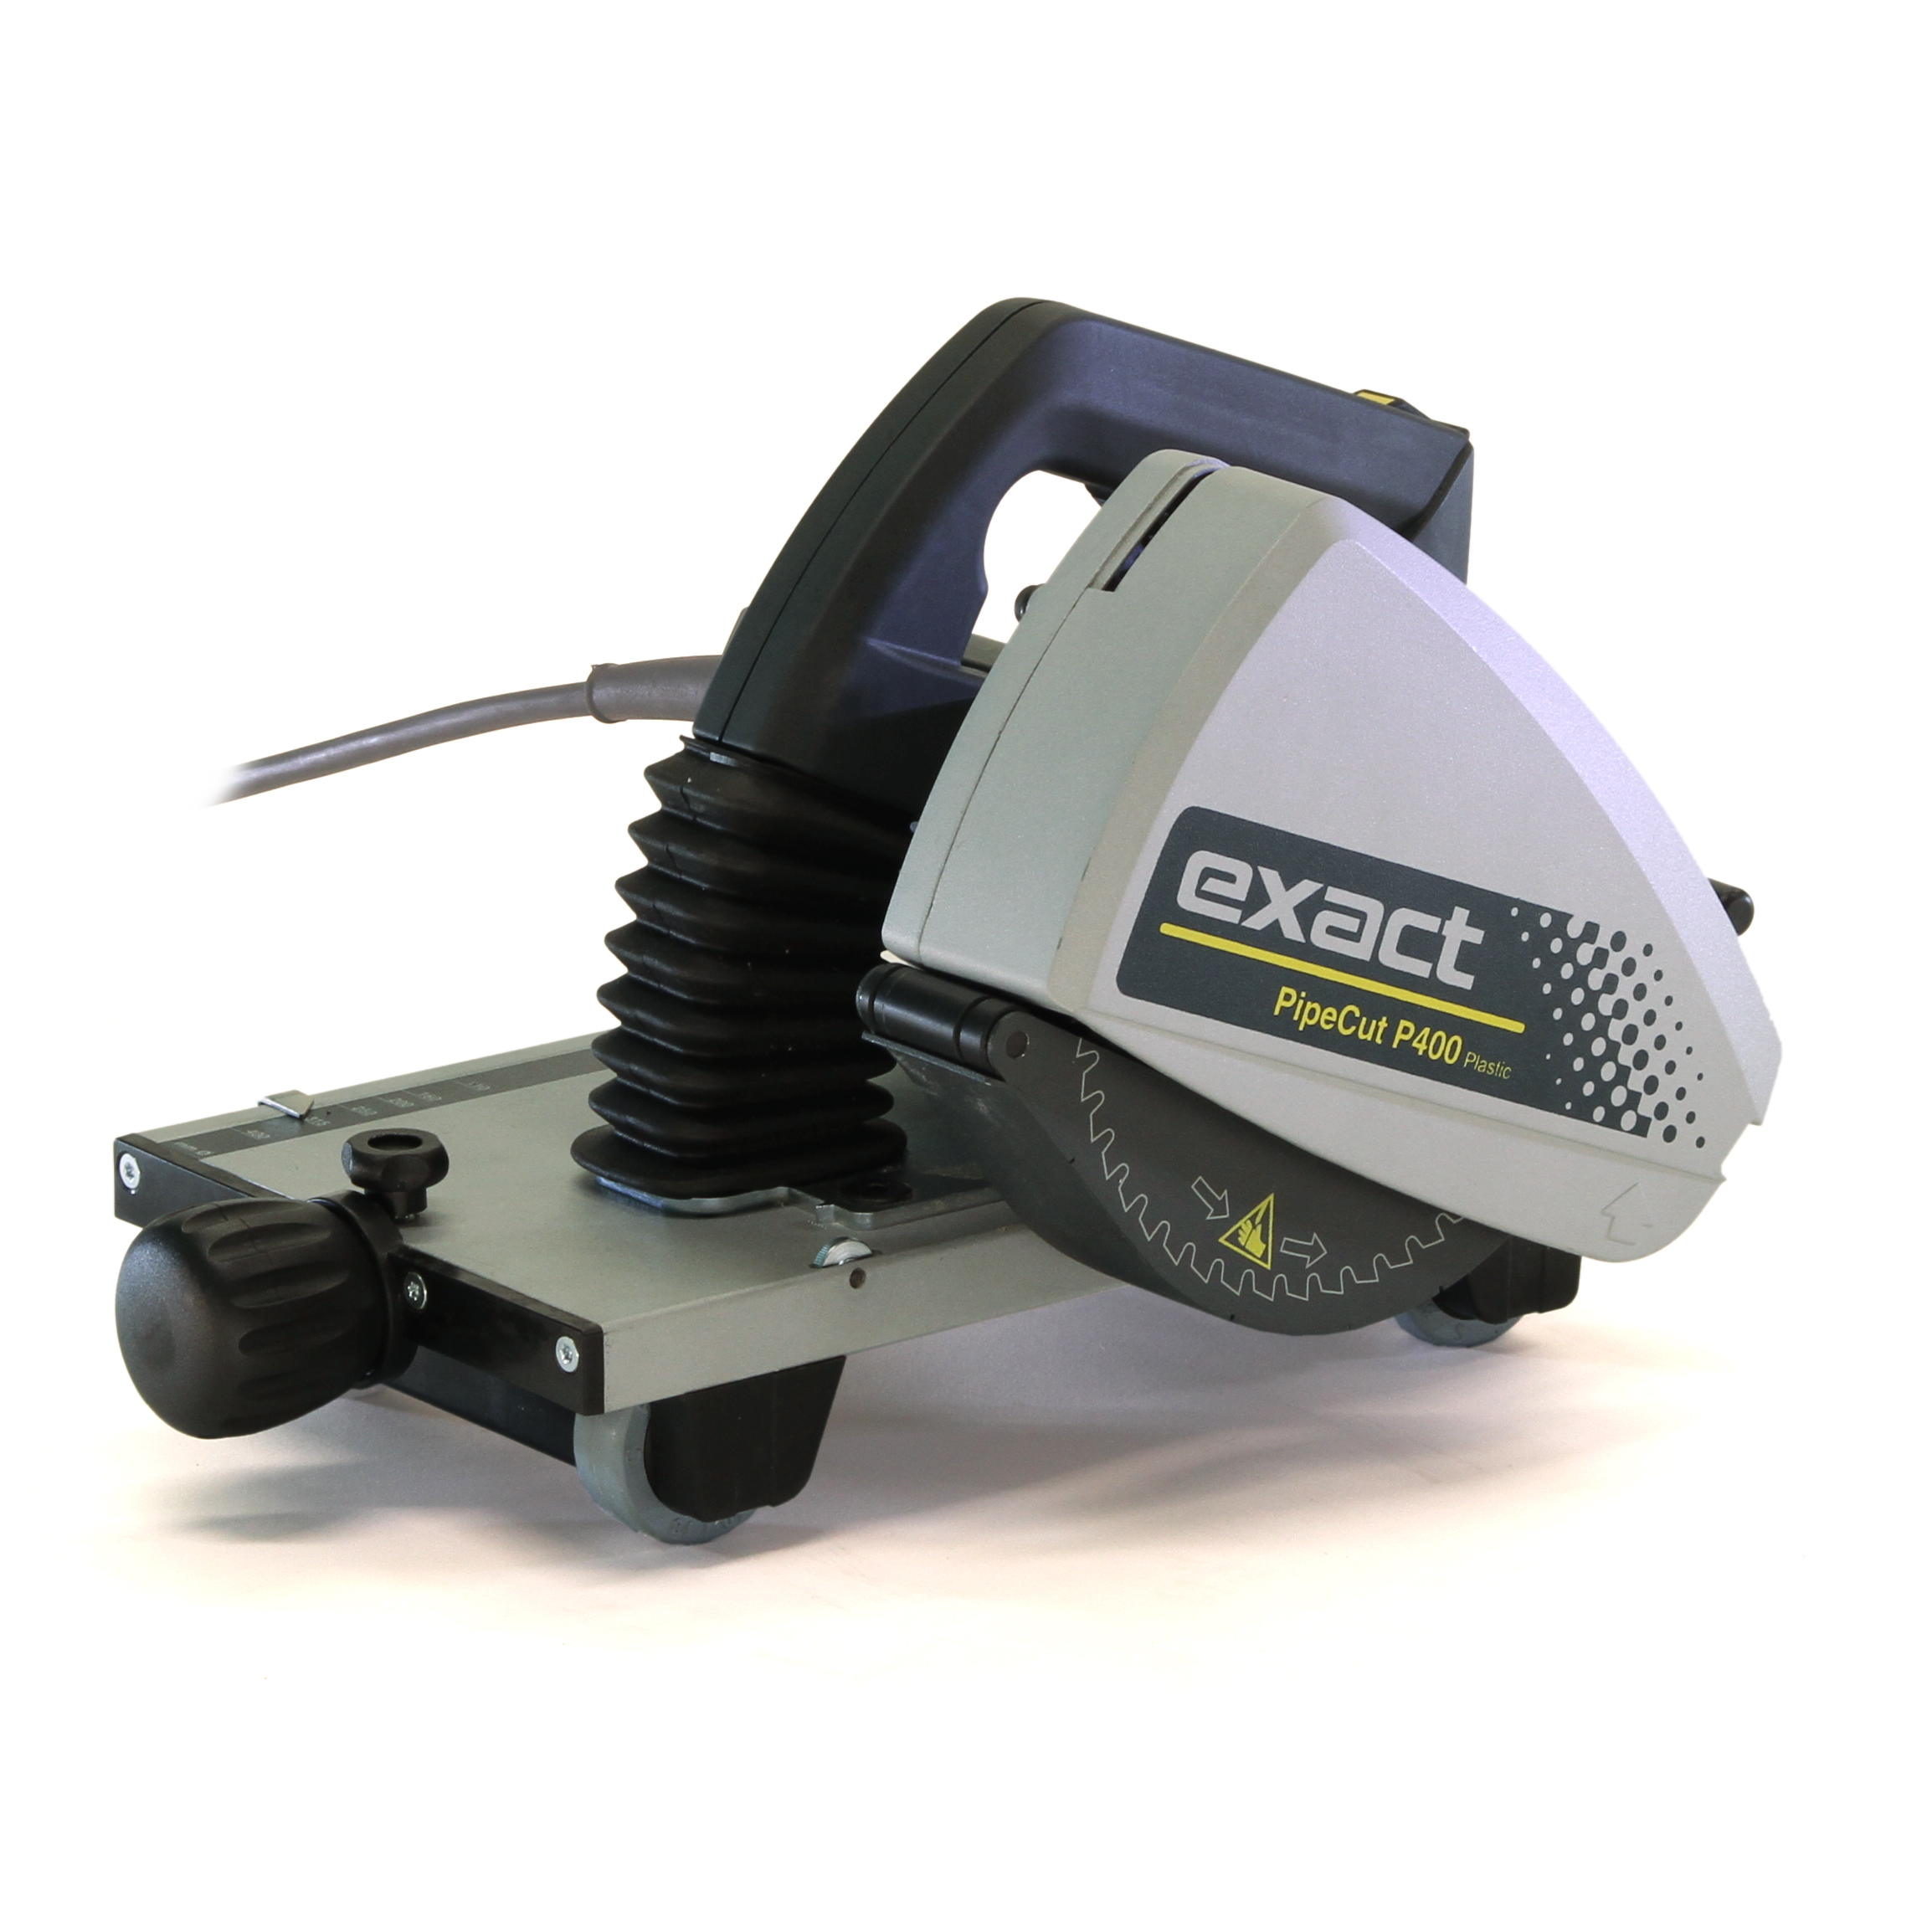 Exact Pipe Cutter p400